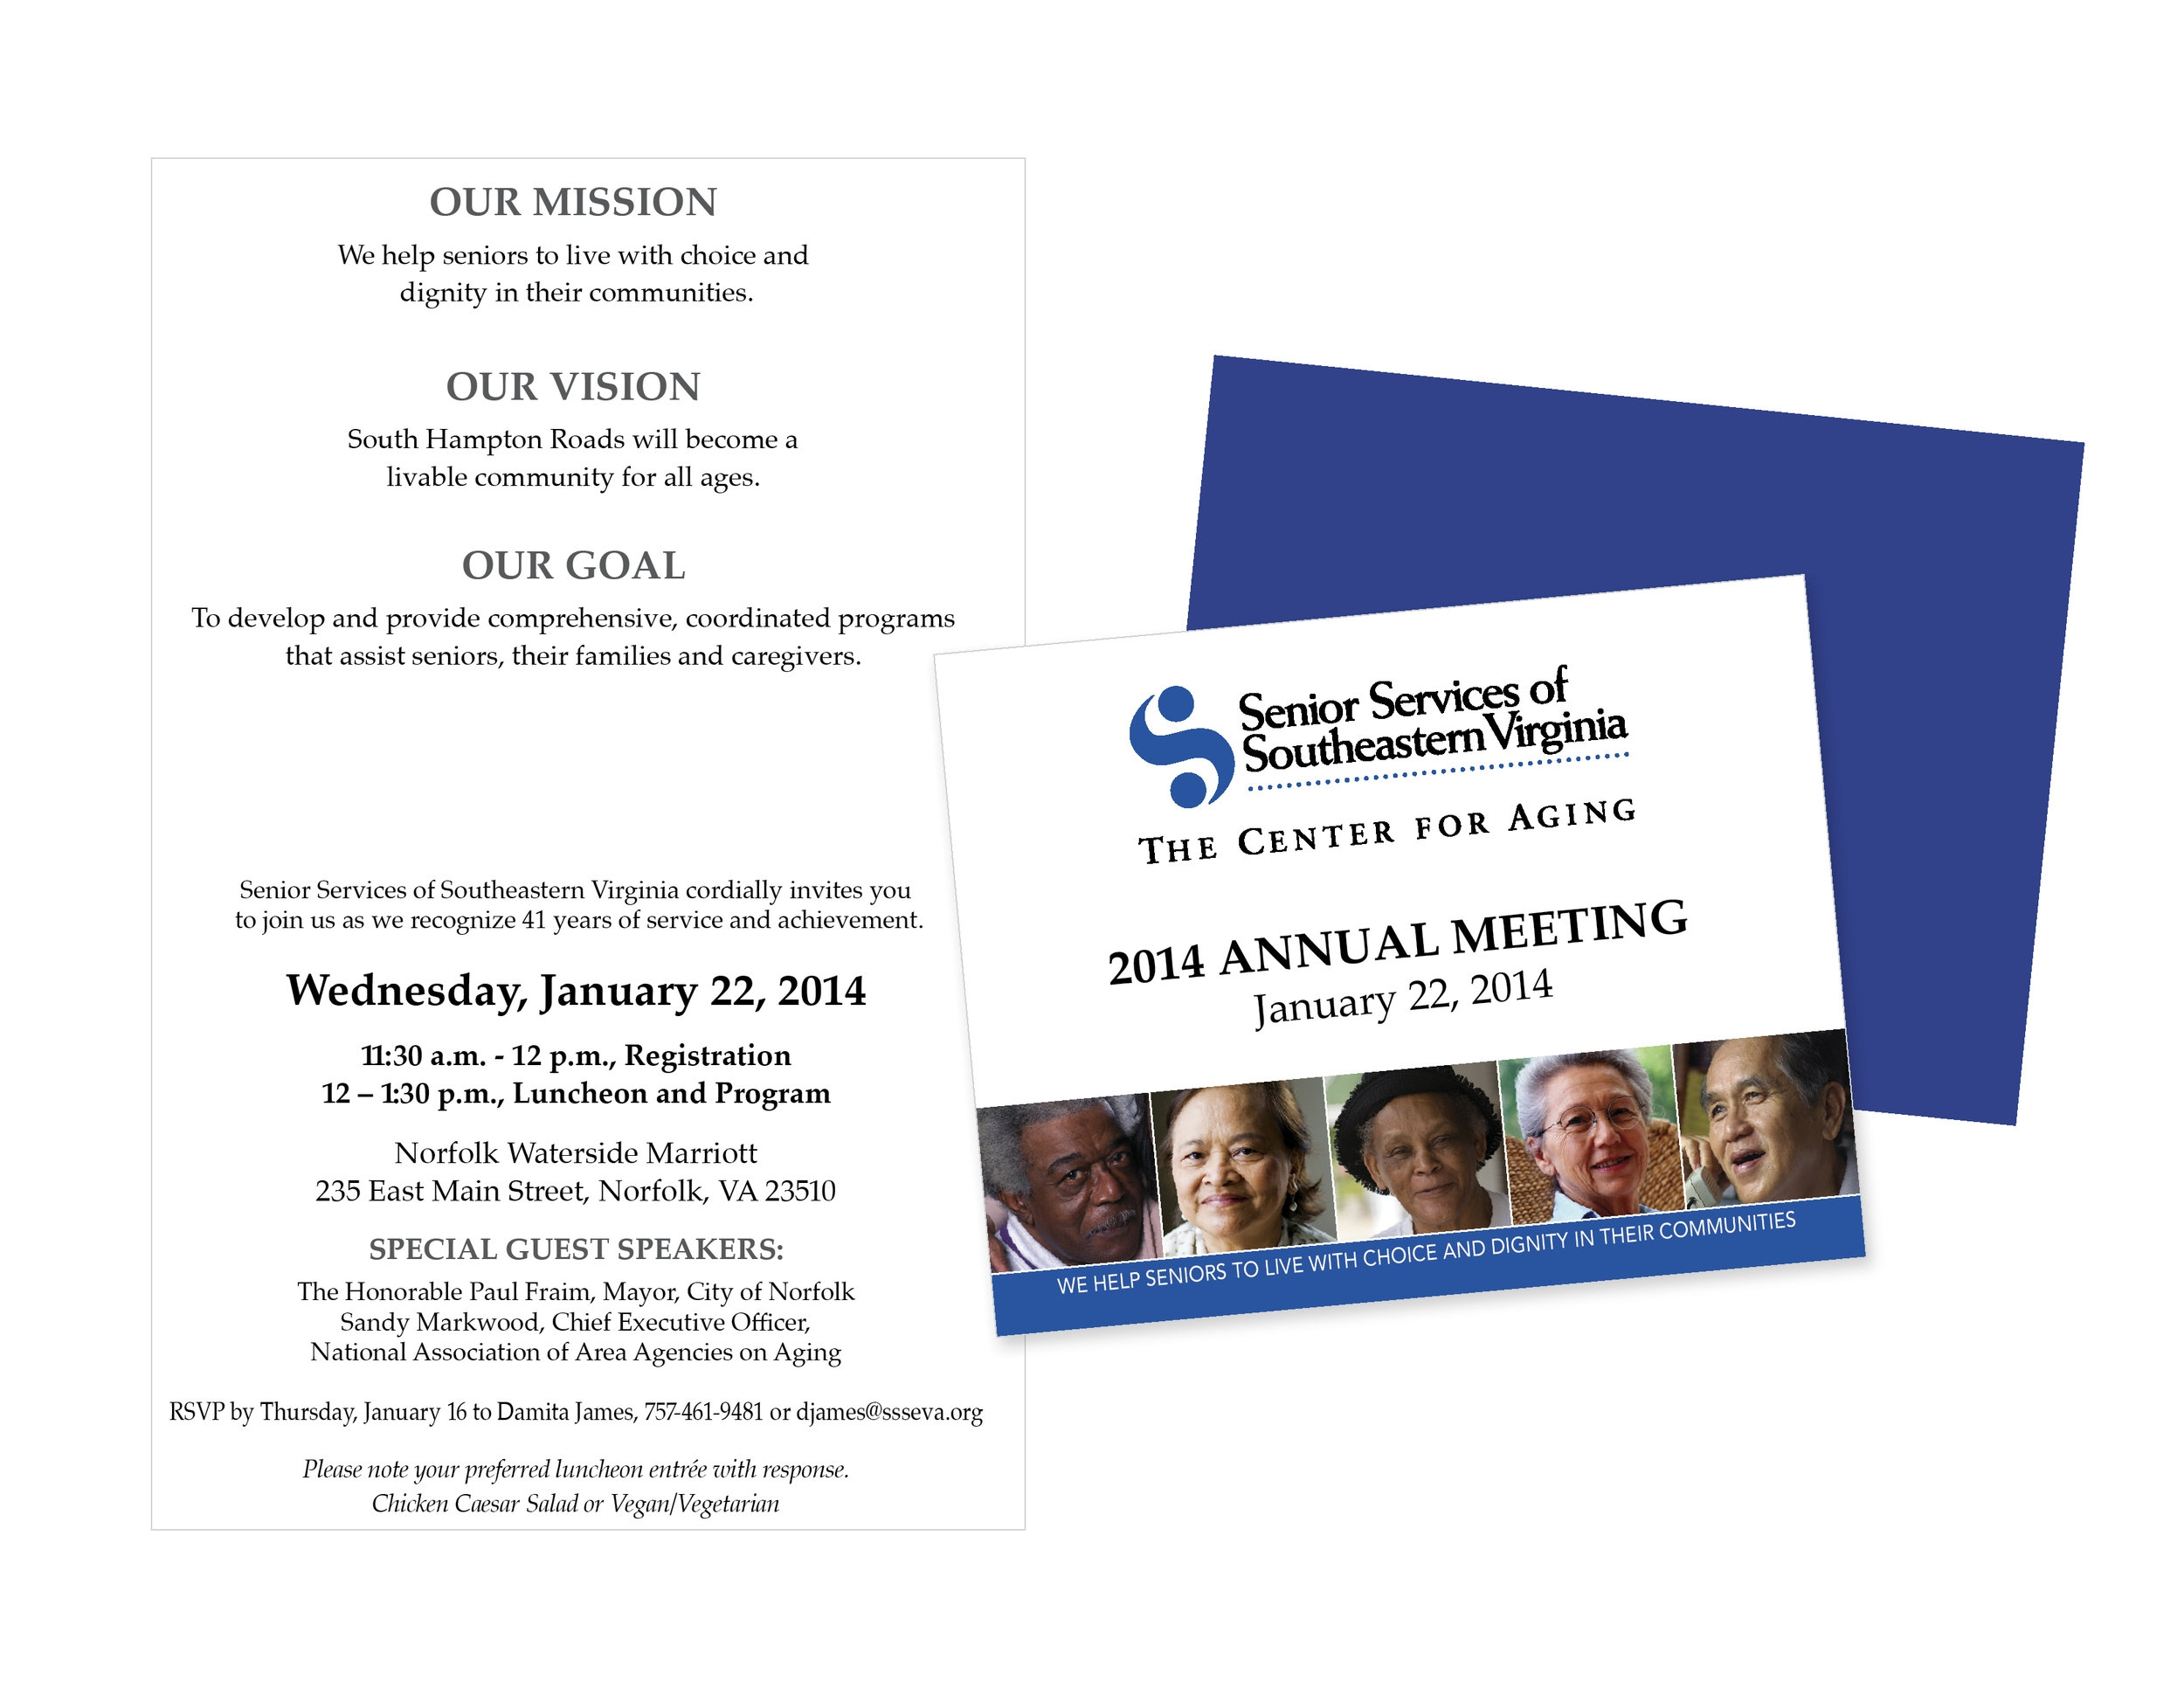 Invitation to Annual Meeting